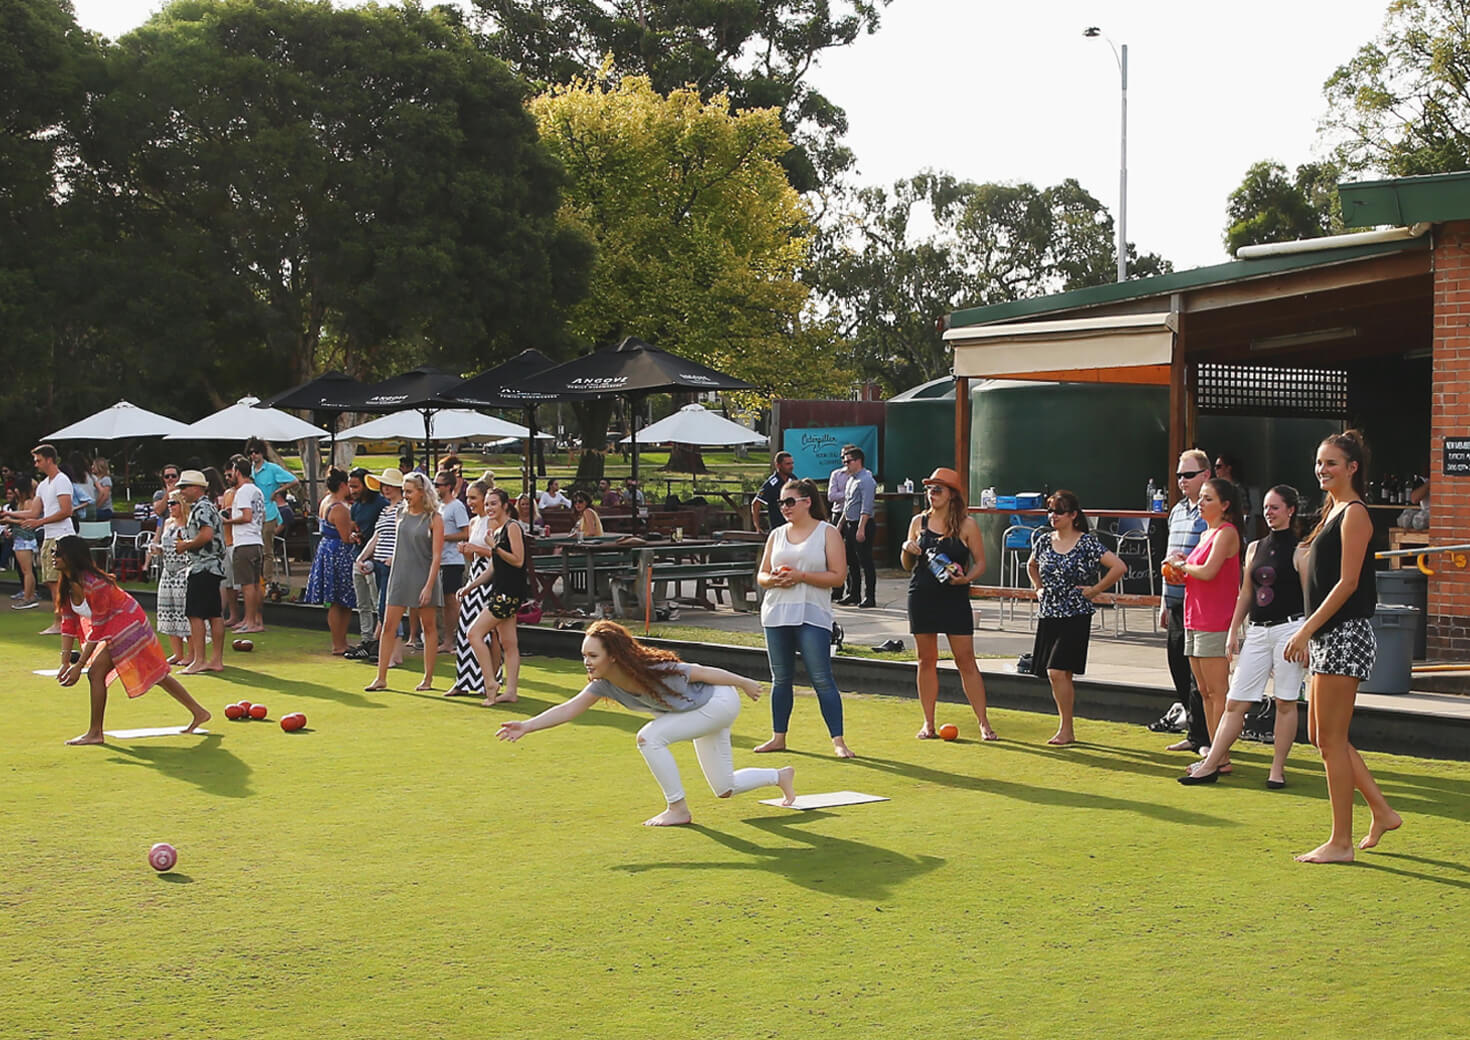 Young people playing bowls game